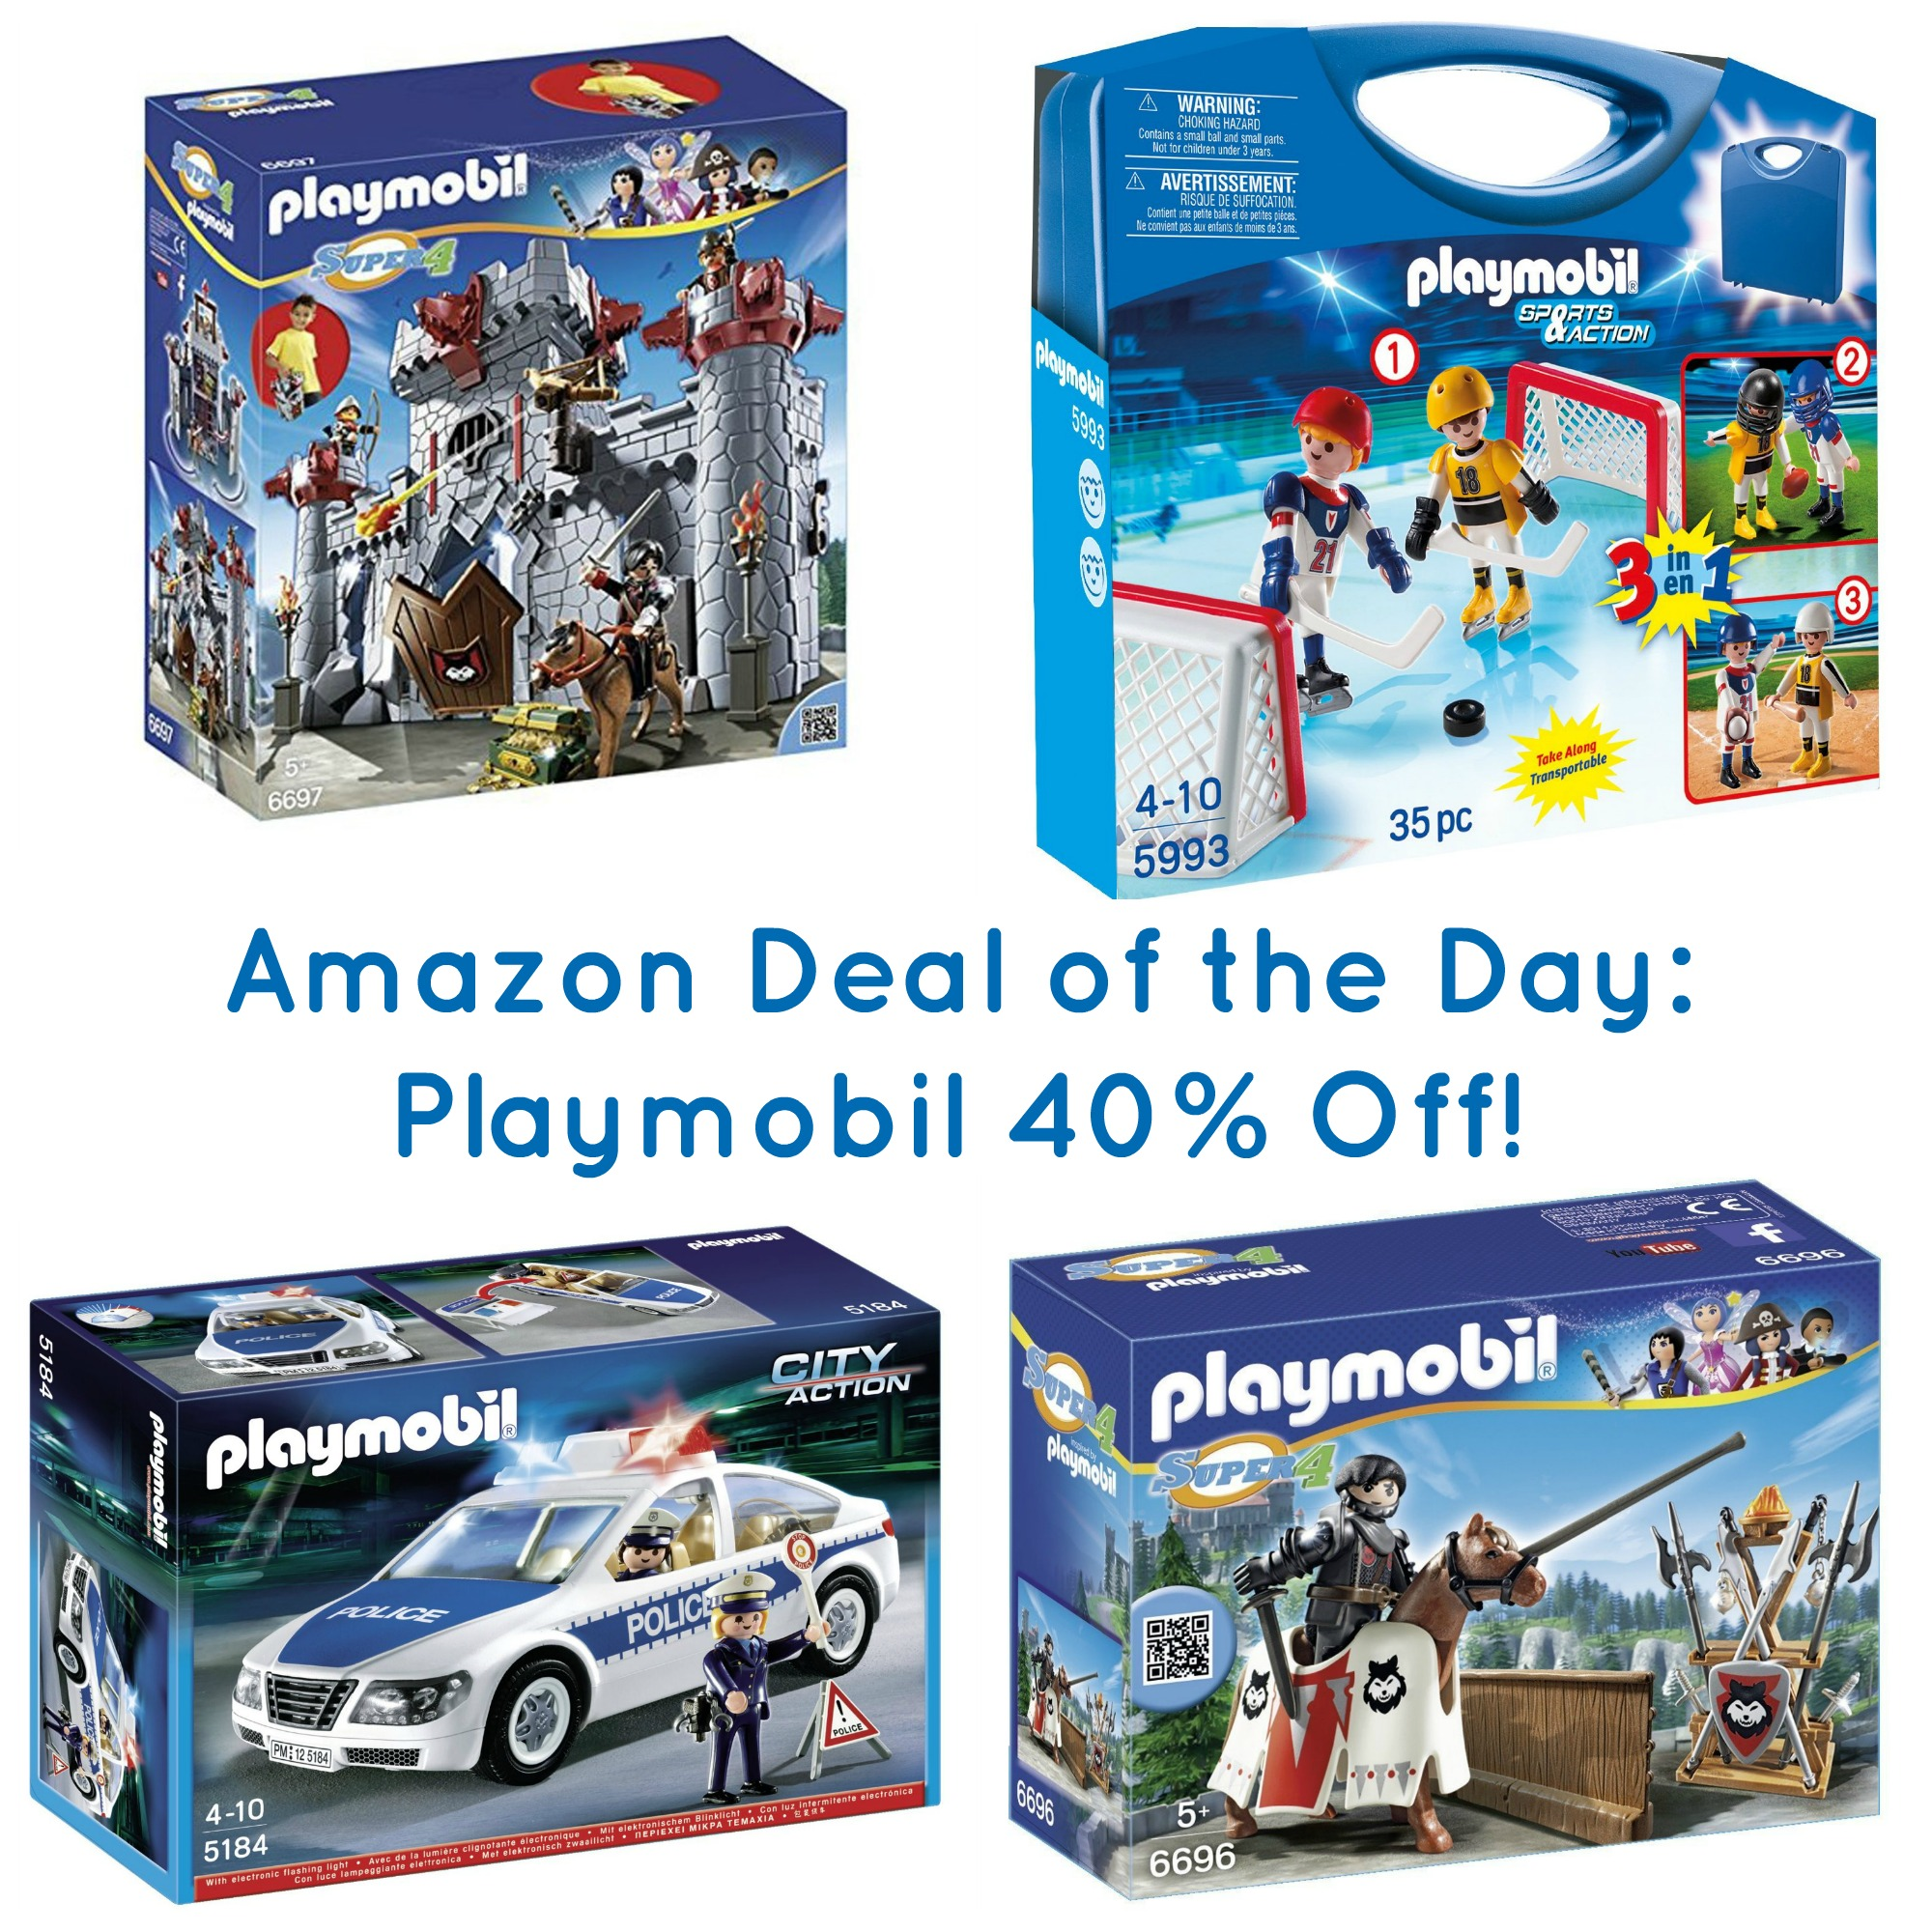 Amazon Deal of the Day: Select Playmobil Toys 40% Off!